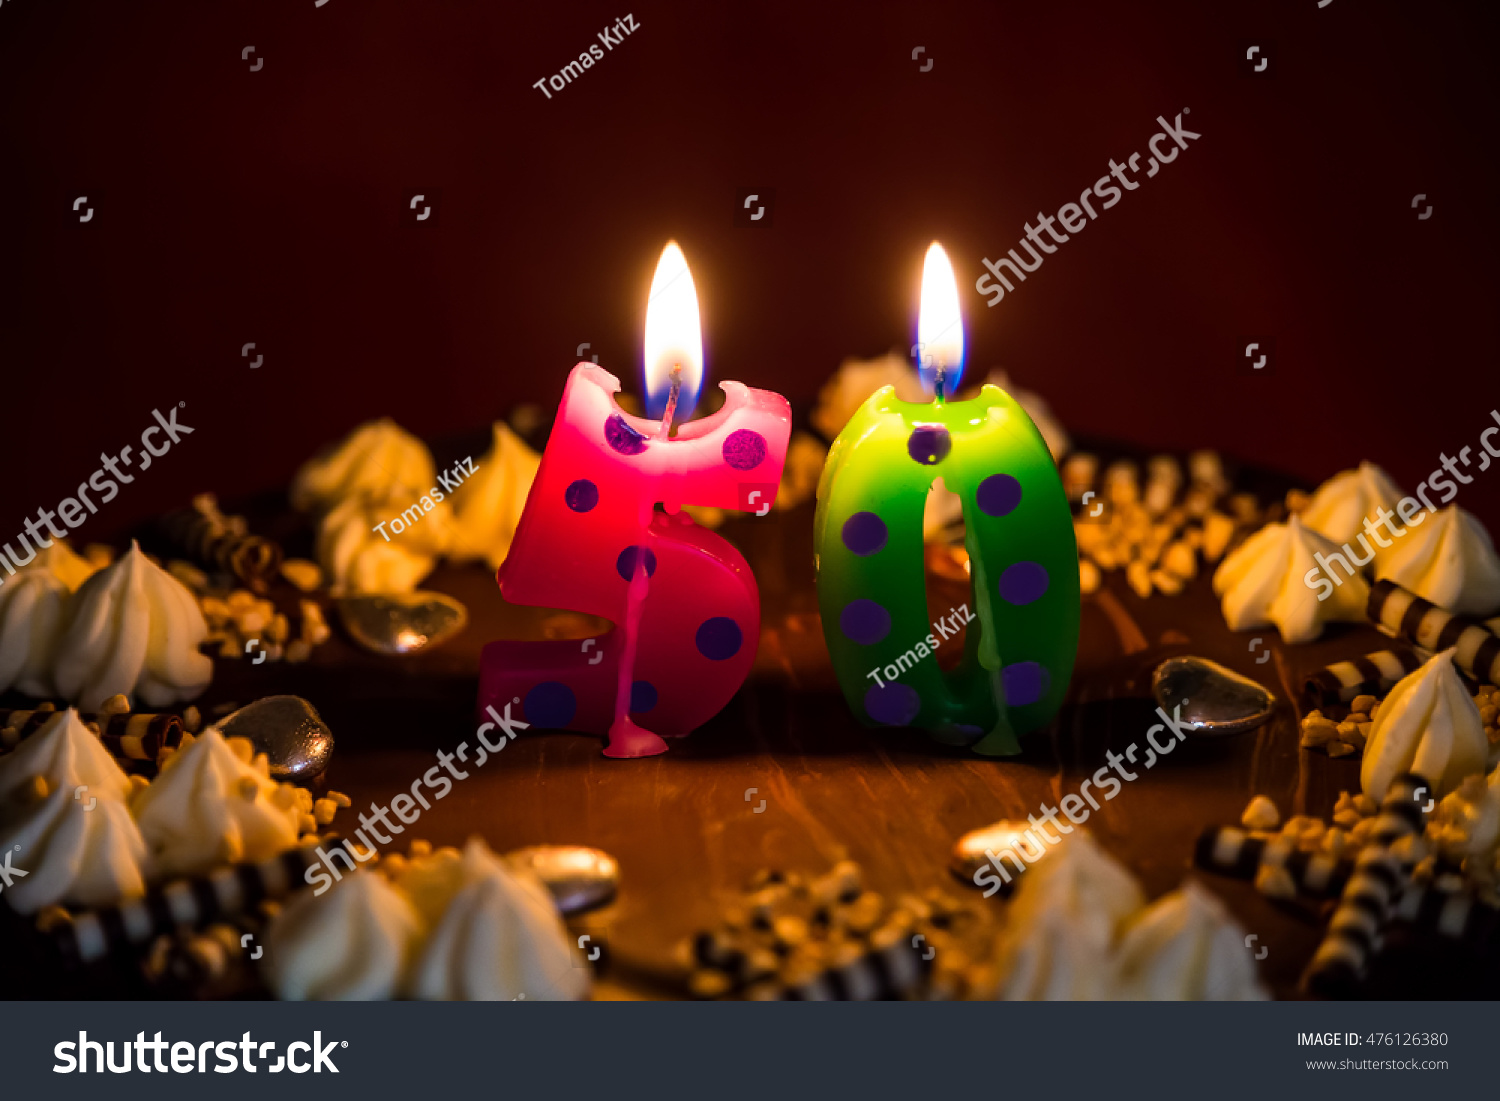 50 Birthday Cake Lit Candles Stock Photo Royalty Free 476126380